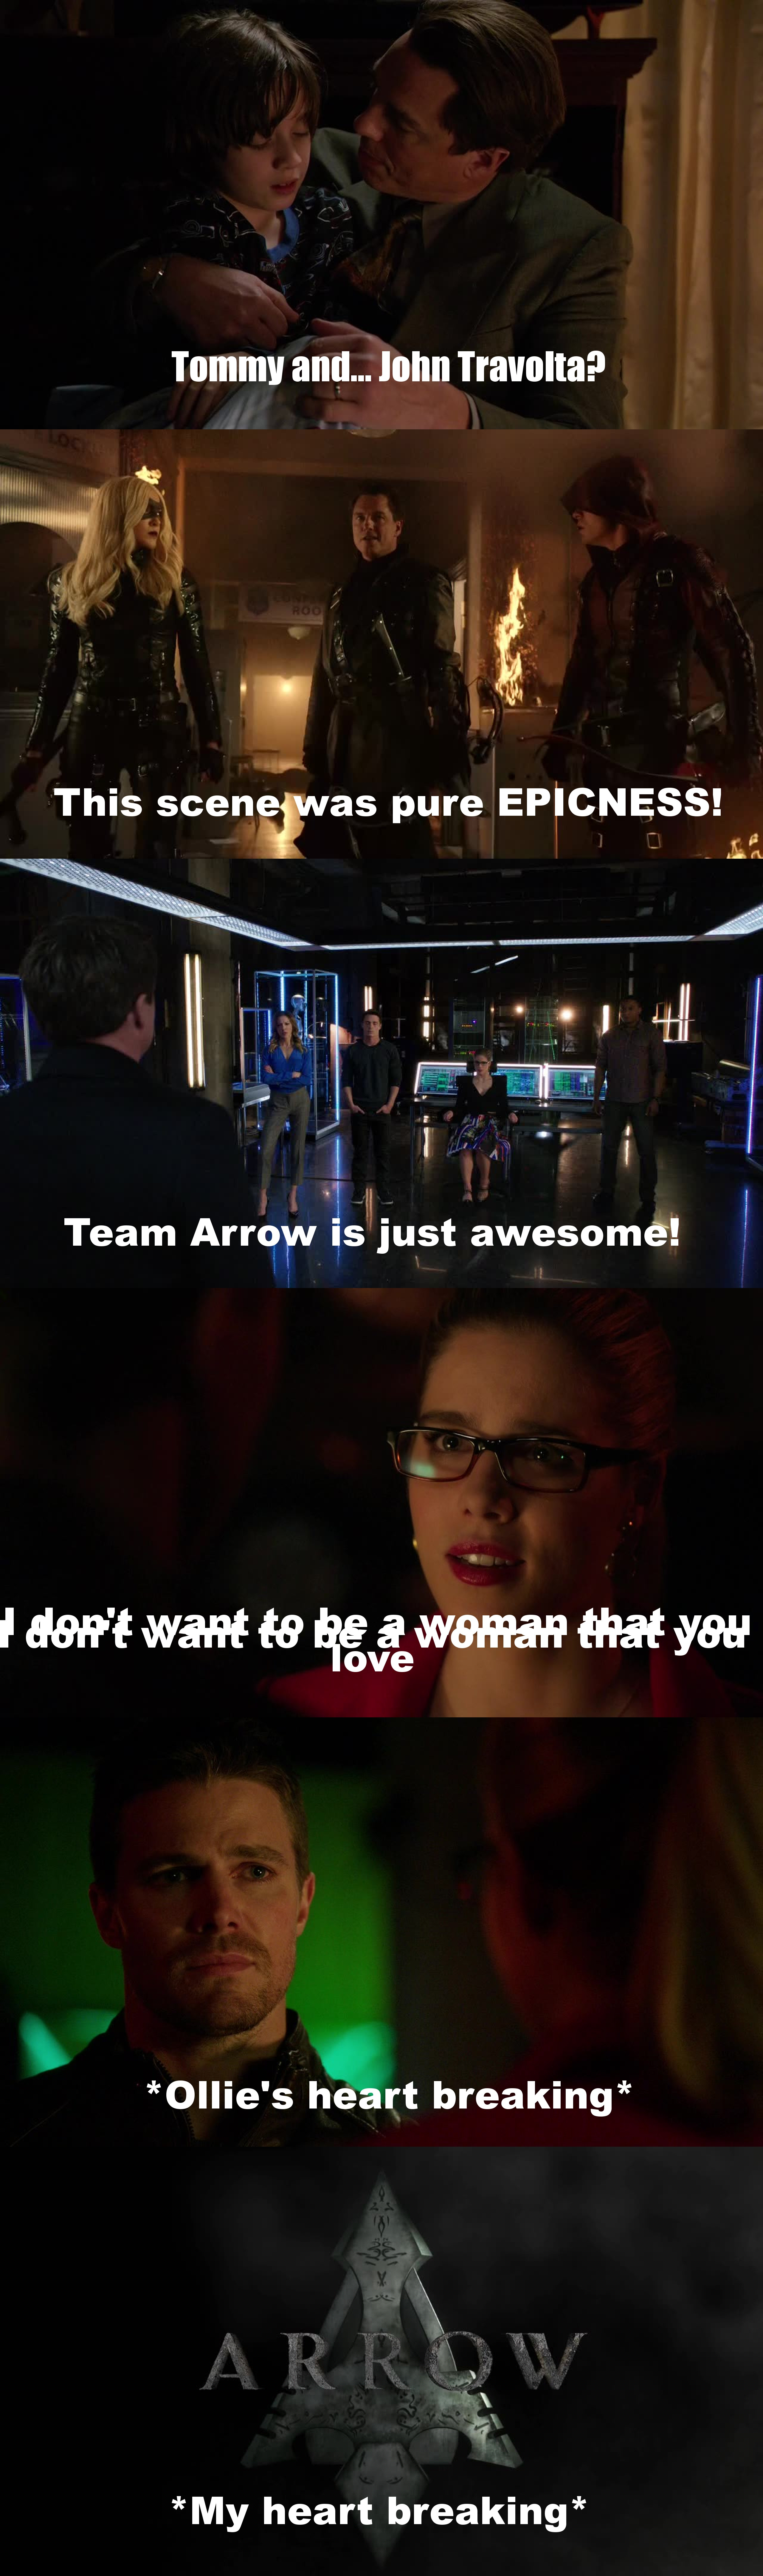 MAN, THAT WAS AWESOME! a lot of people did not liked the episode, but it was perfect for me... I mean, I loved Team Arrow making the city join their forces, also the return of Oliver was stunning, I wasn't expeting him to come back in this episode, so I was surprised... Also, I loved loved loved the story of Malcolm (and his Travolta hair-style was very amusing), I really enjoyed watching him and his son have a very close relationship, though it was kinda weird seeing Malcolm in that parental way, but awesome as hell! Finally, I discovered that Arrow is getting into the CW syndrome... creating an excellent episode, full of action, good performances, great plot... just to end with the most heartbreaking scene ever! In the whole episode, that final speech was what I loved the most, but yeah, it was saaaad sad... Olicity fans, here, have my shoulder to cry :'(((